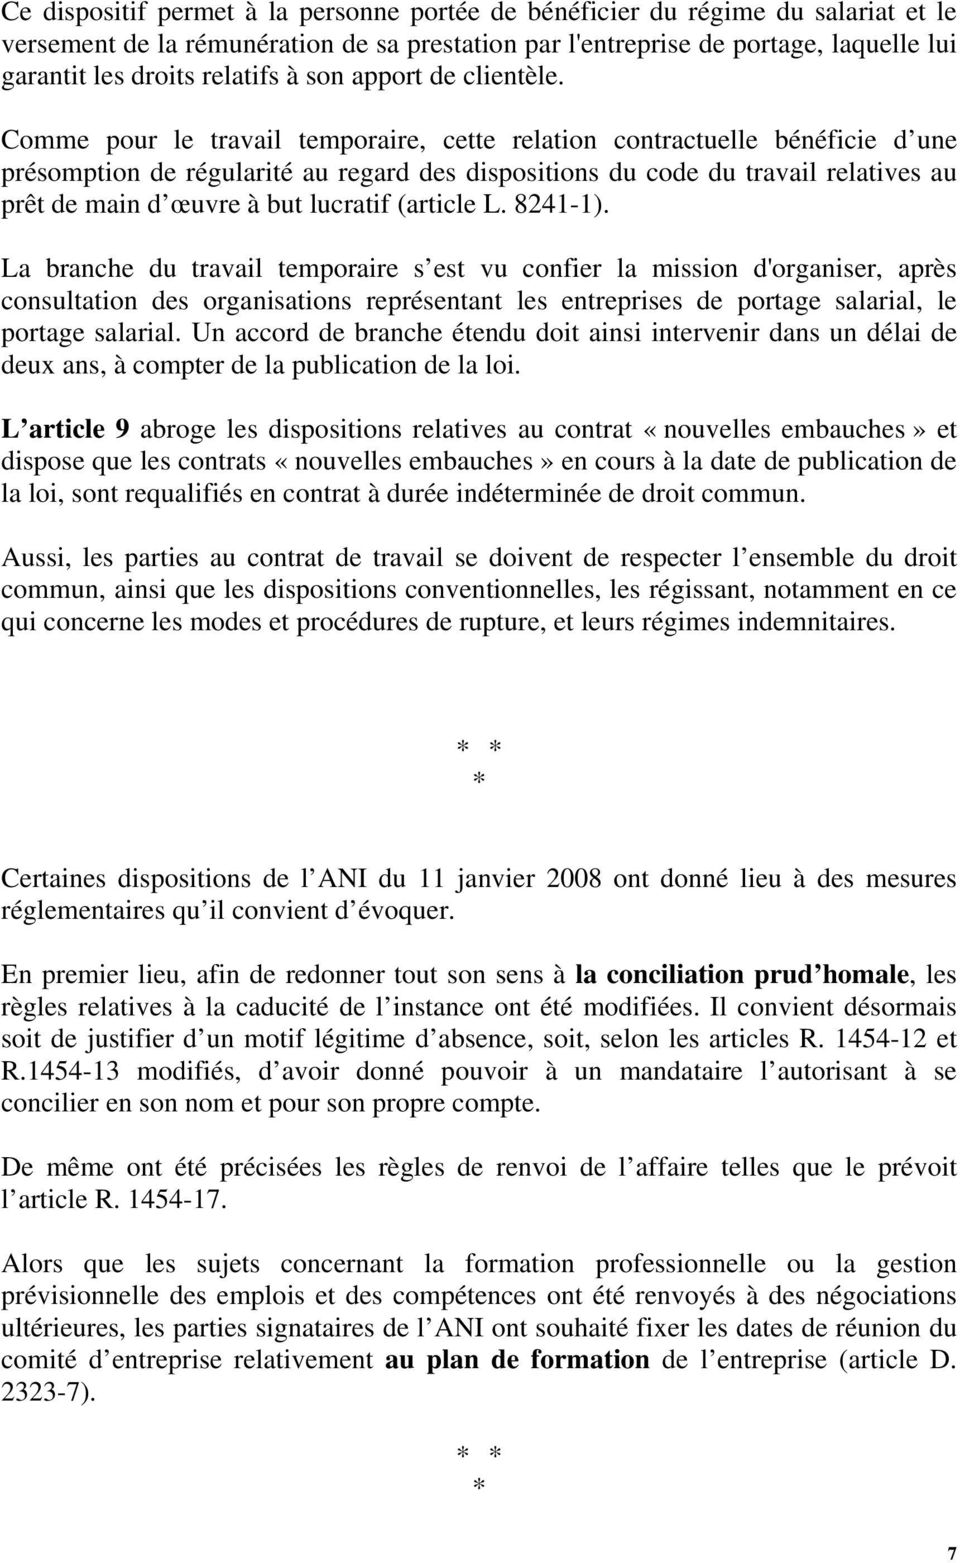 Comme pour le travail temporaire, cette relation contractuelle bénéficie d une présomption de régularité au regard des dispositions du code du travail relatives au prêt de main d œuvre à but lucratif